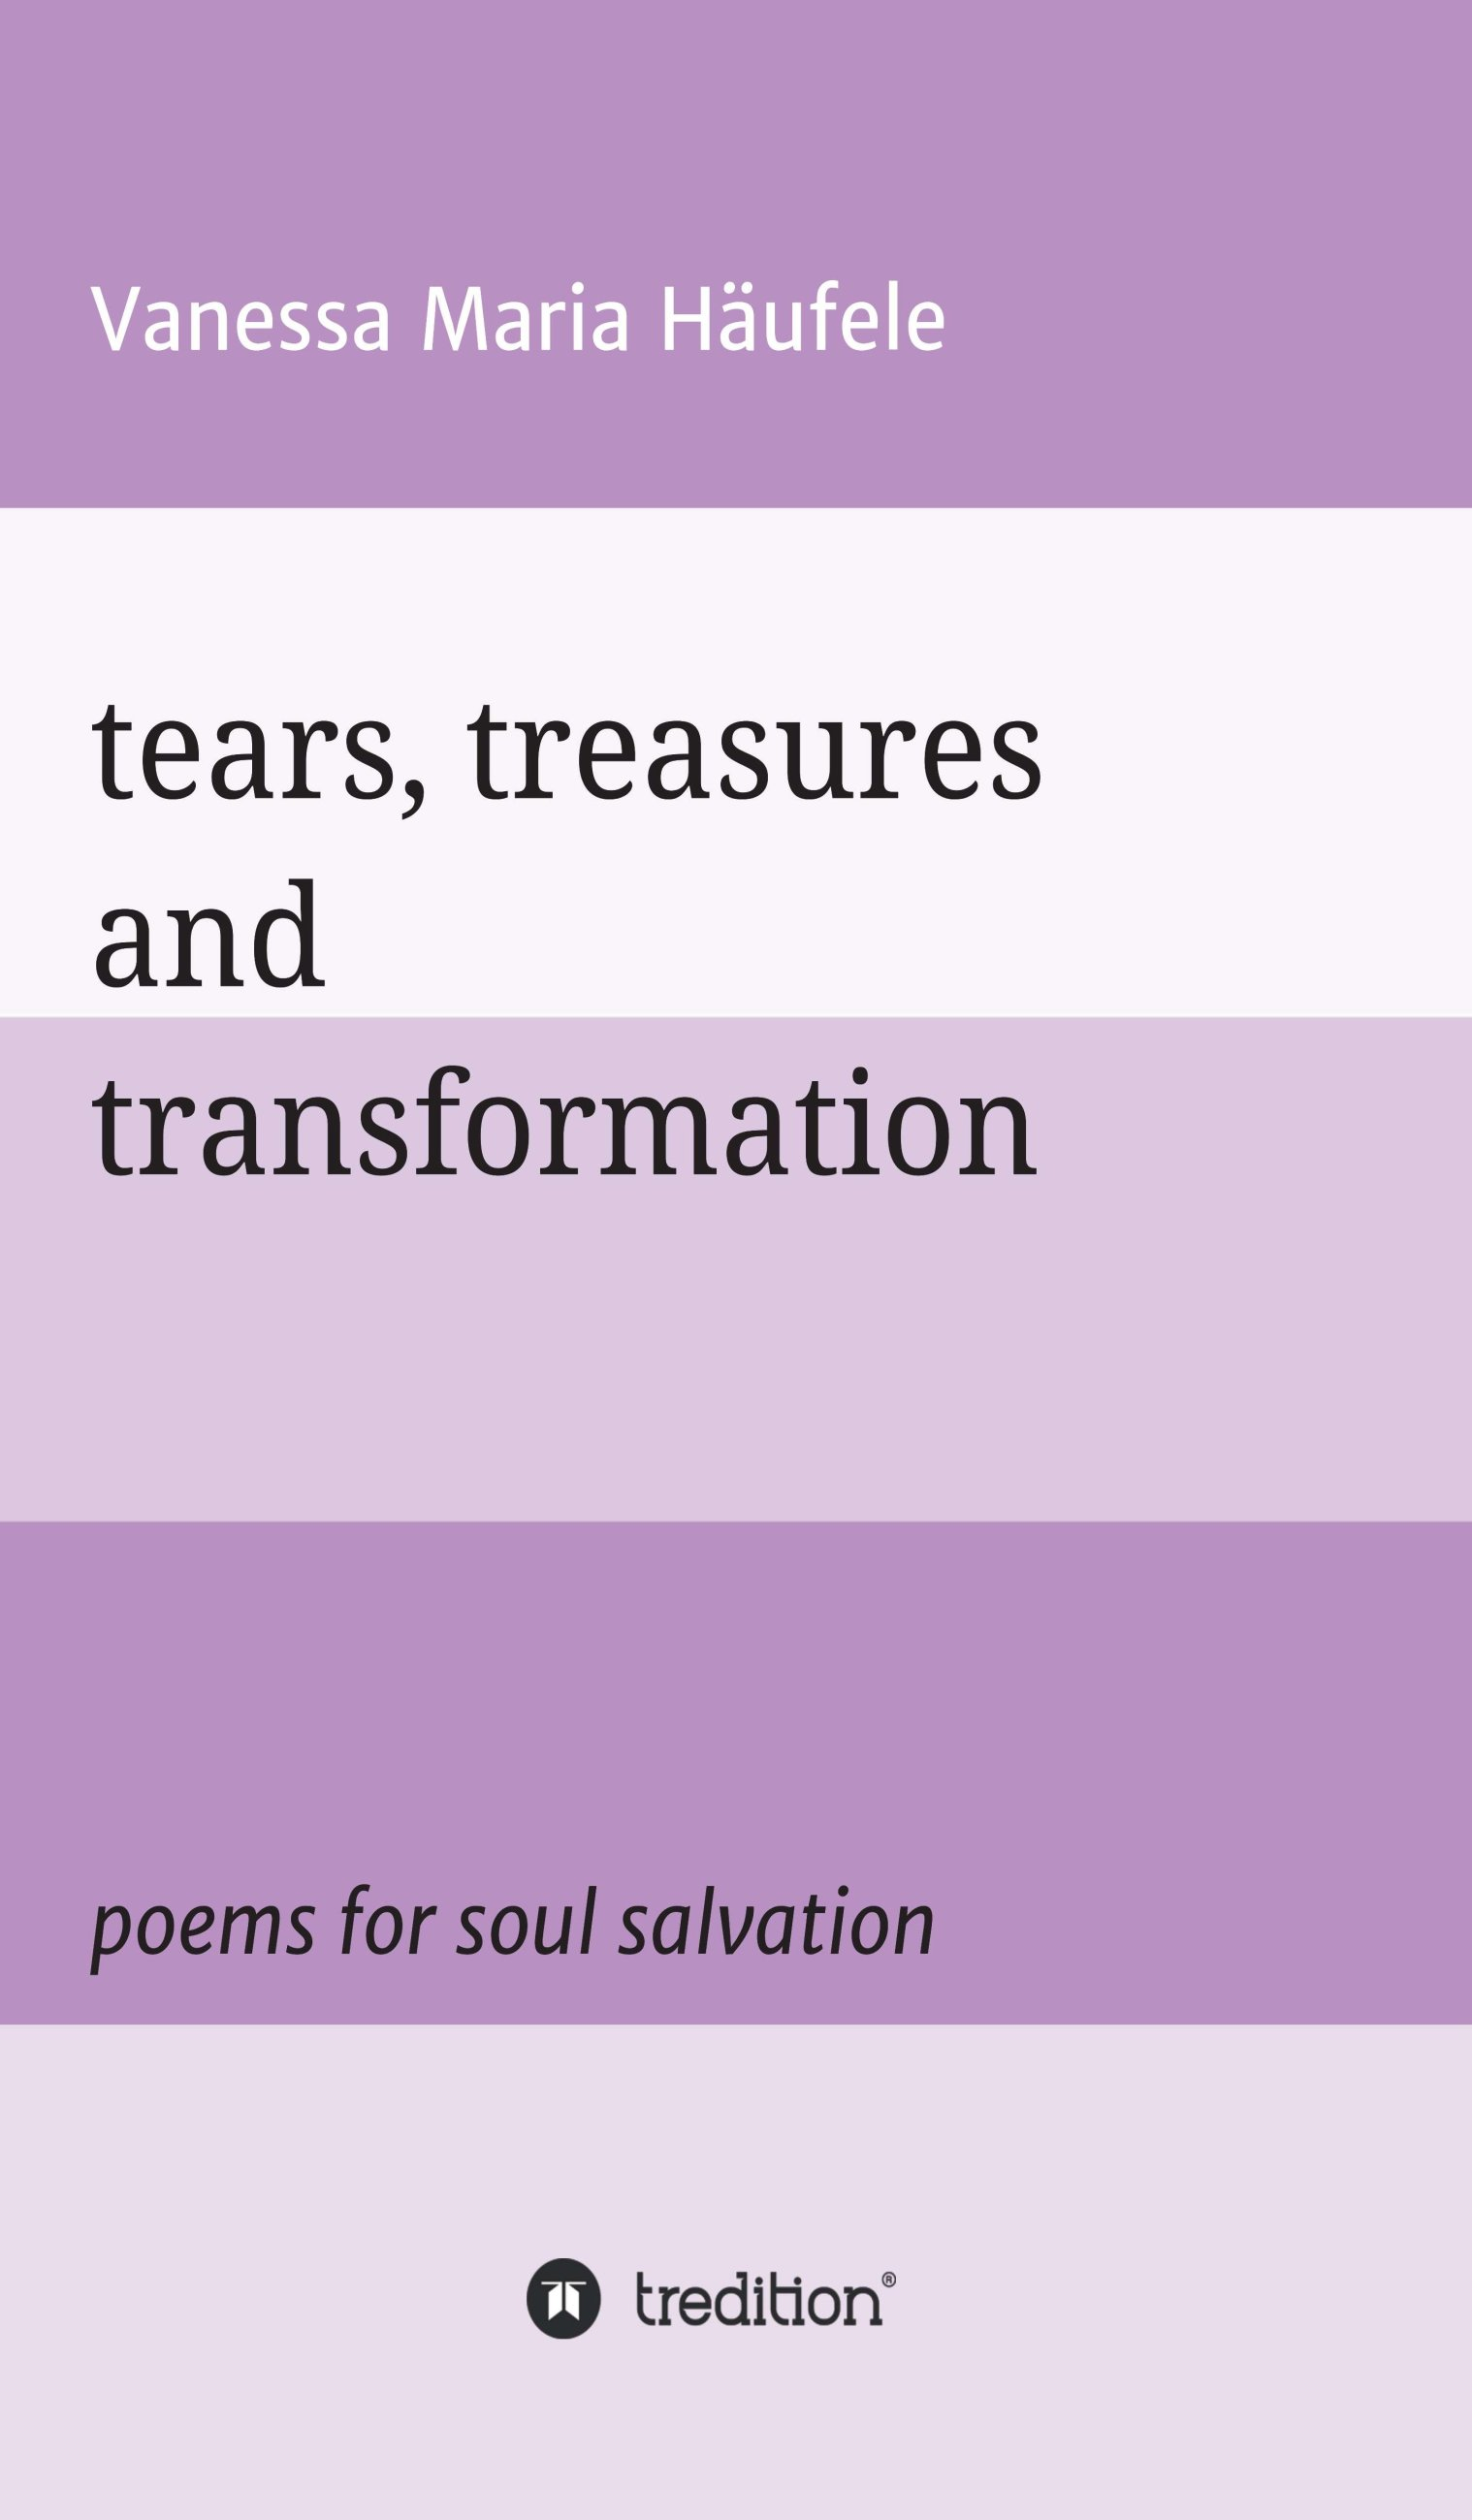 tears, treasures and transformation - Poems for soul salvation